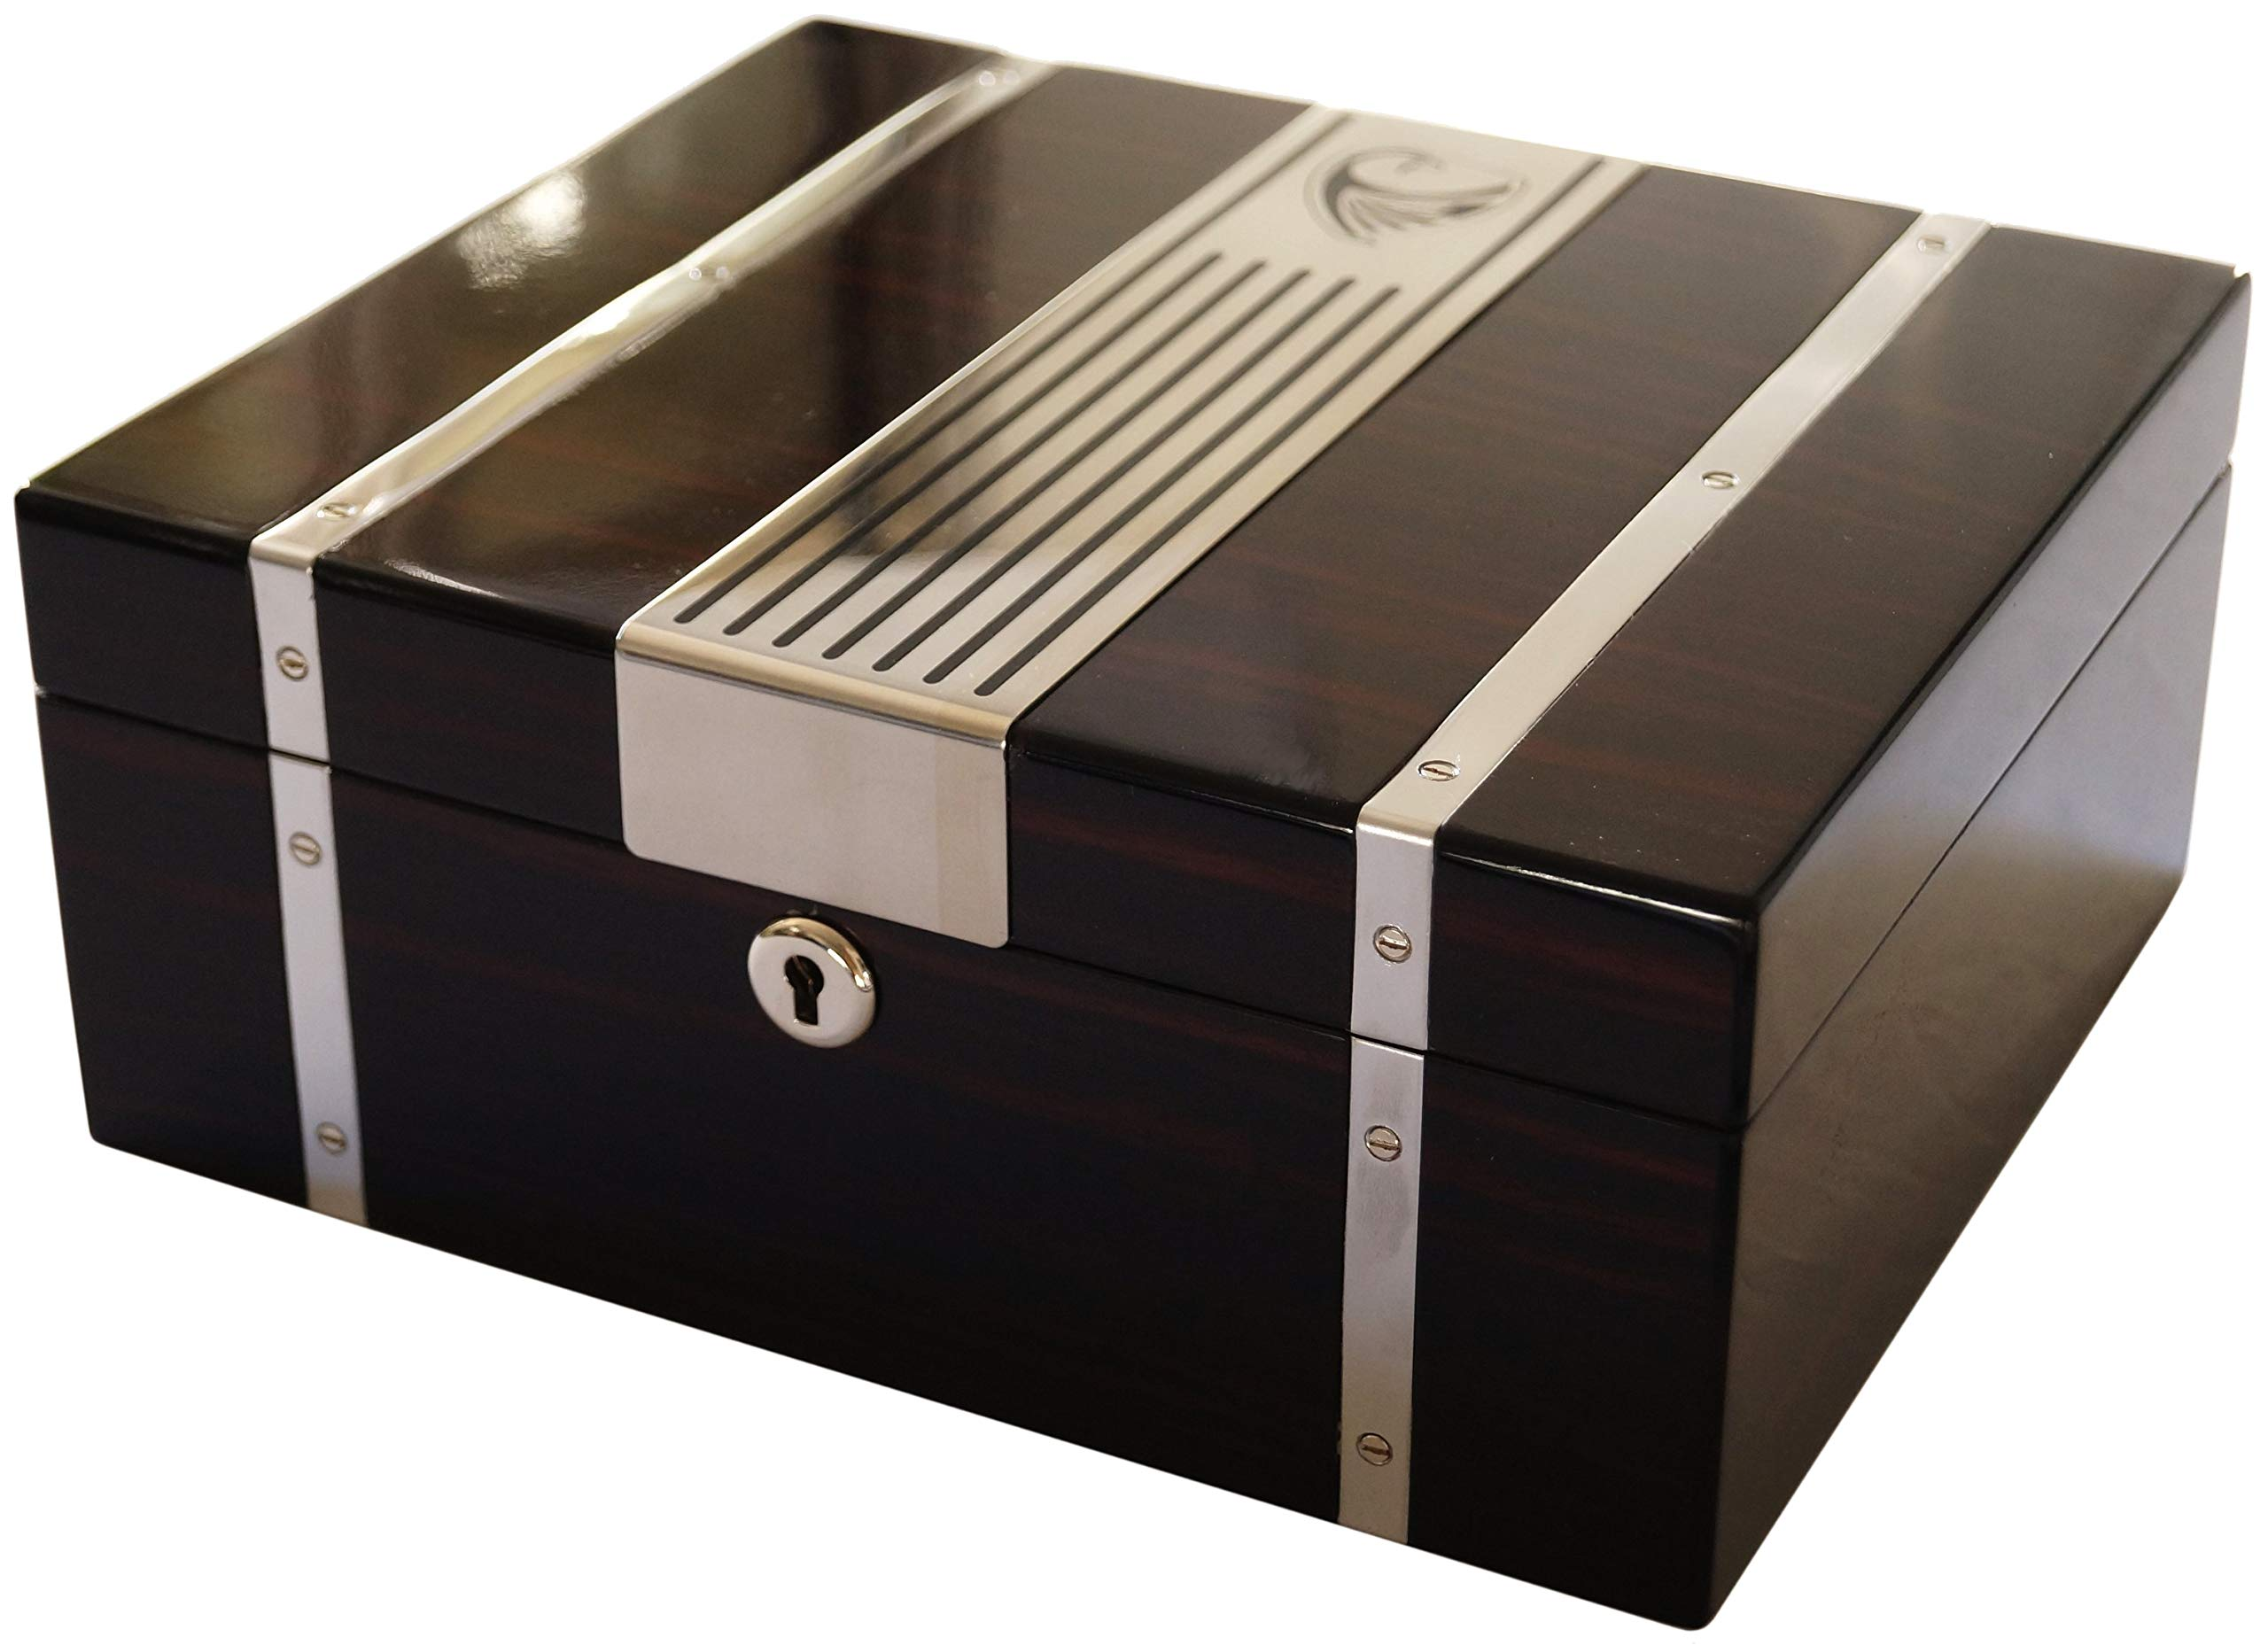 germanus_cigar_humidor.jpg